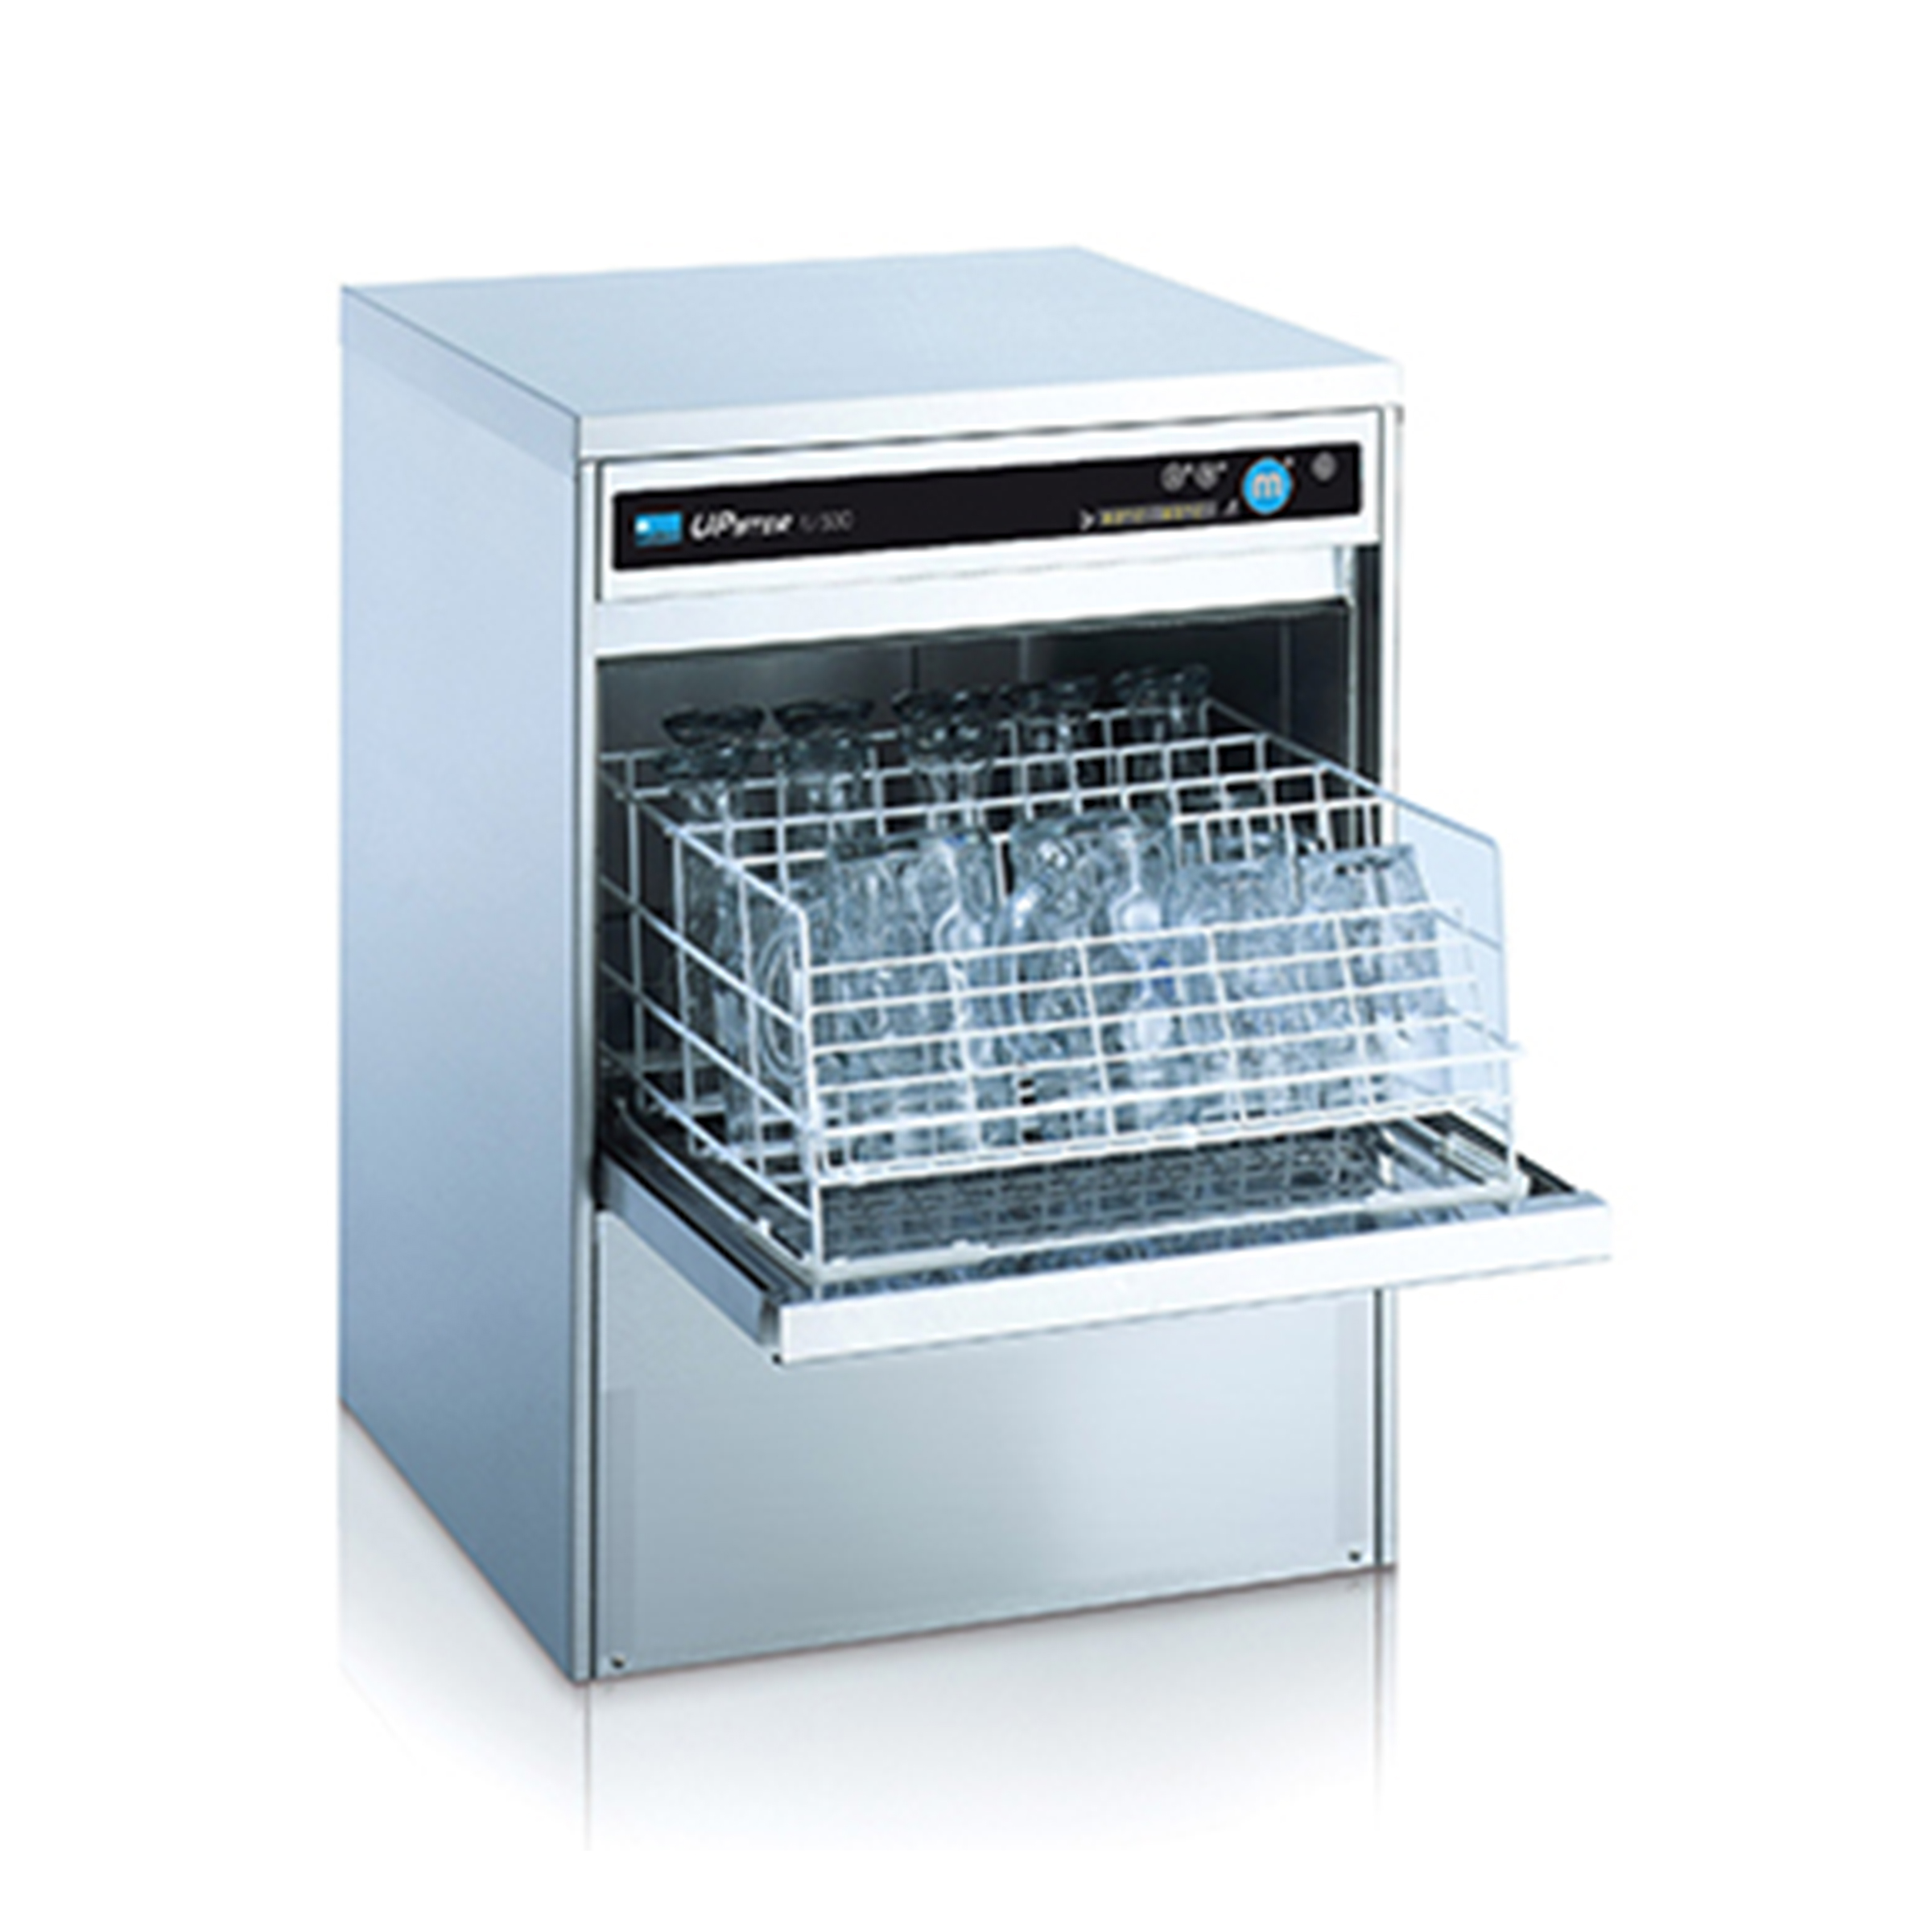 Glass Washer.jpg